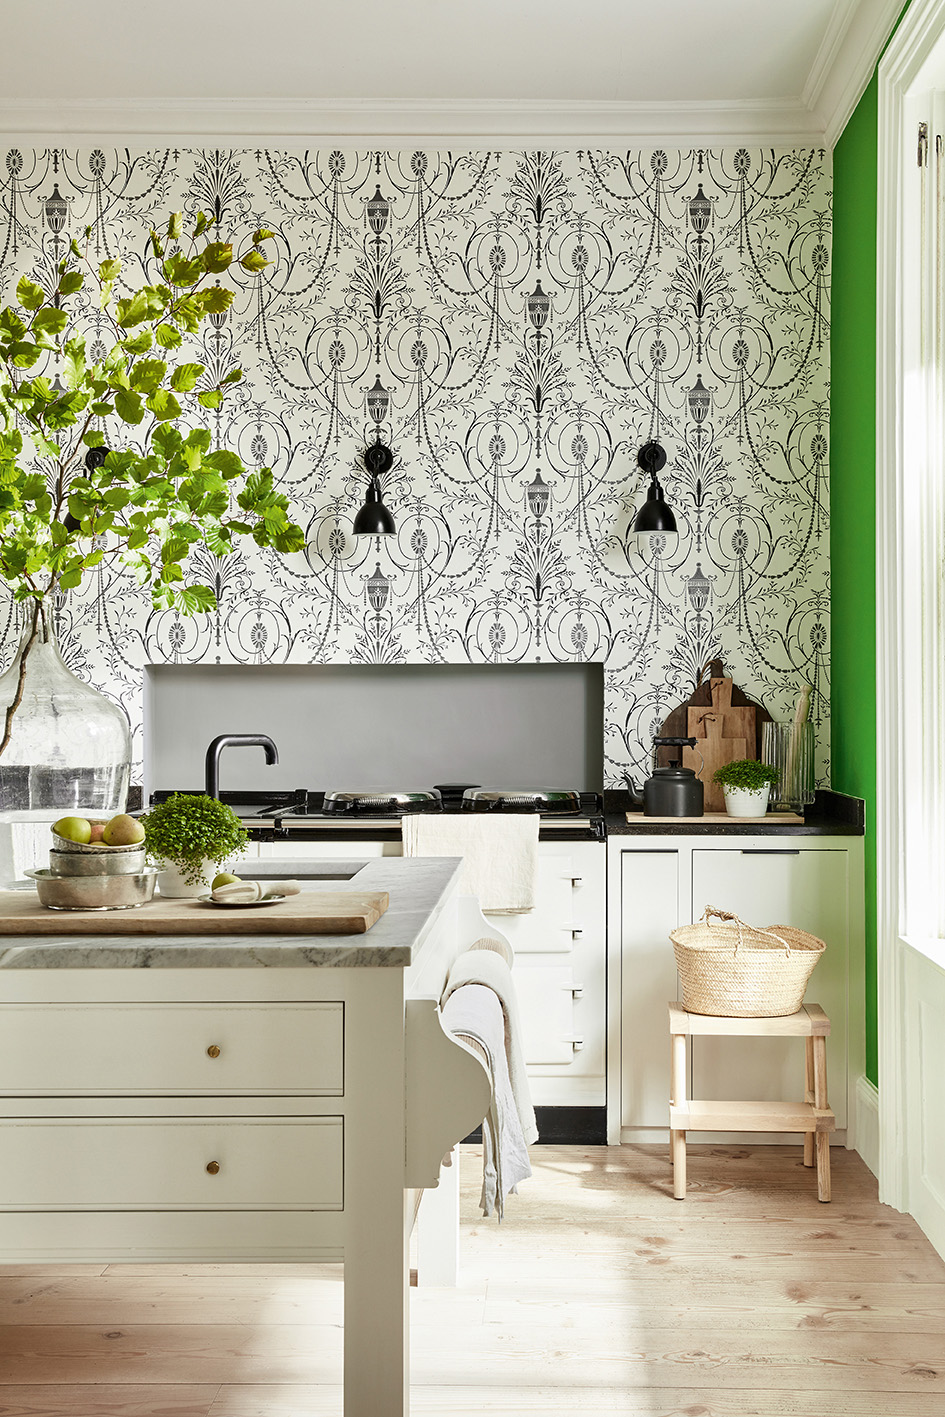 Обои Marlborough, коллекция London Wallpapers V, Little Greene